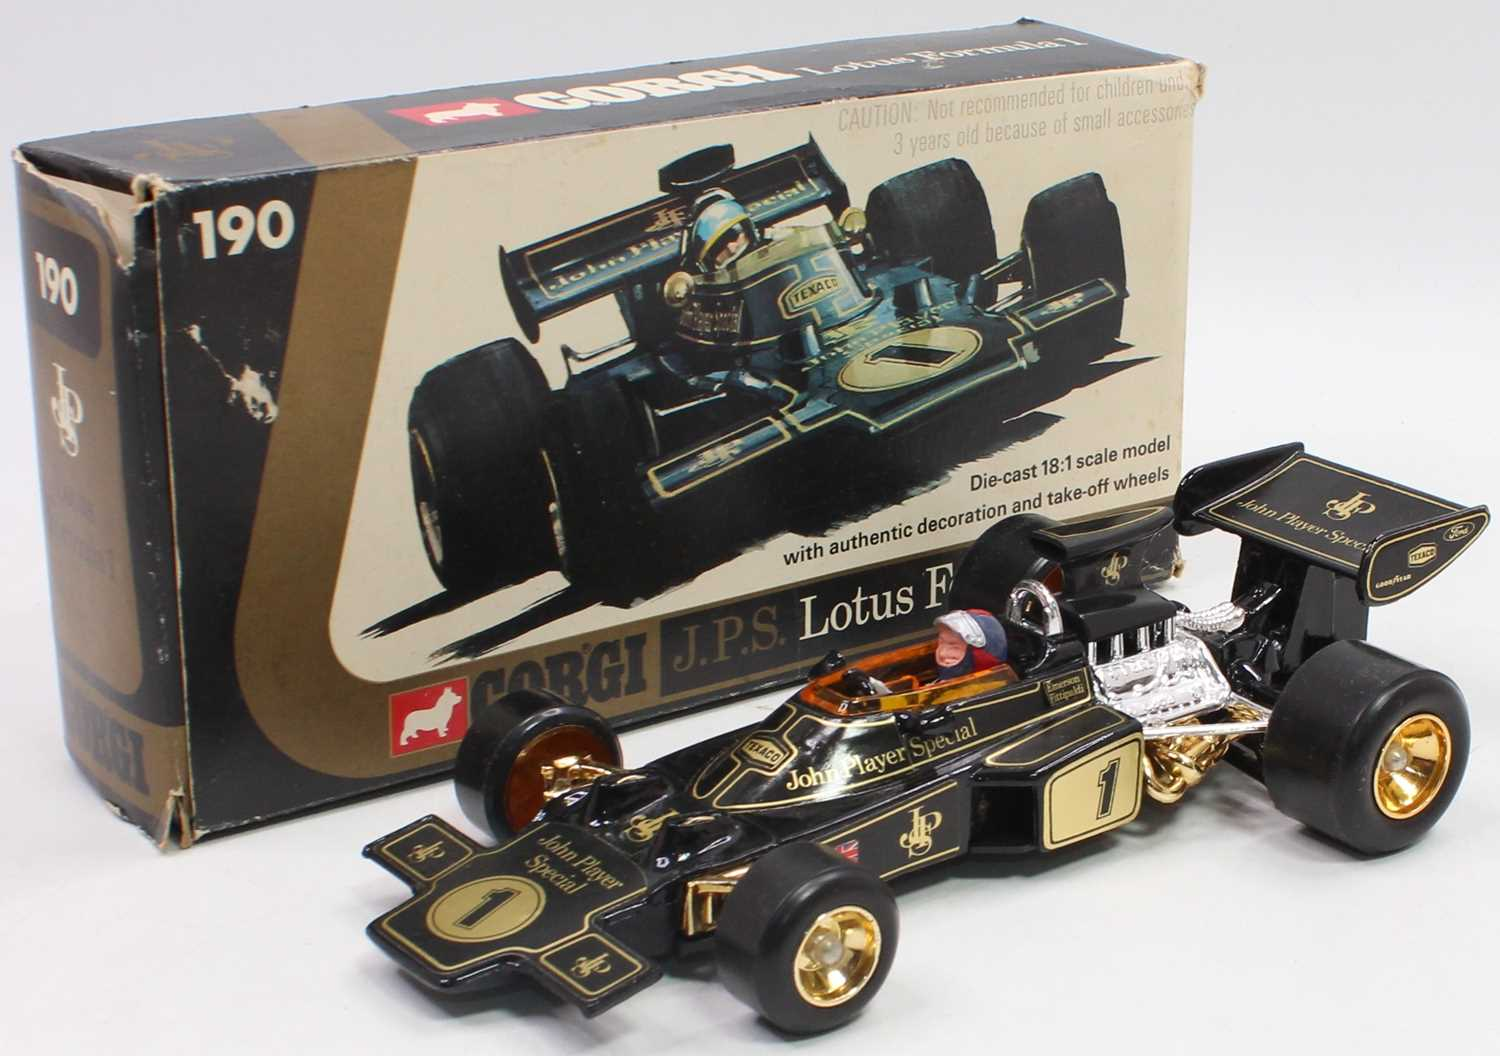 A Corgi Toys No. 190 JPS Lotus F1 race car, 1/18 scale comprising of black and gold body housed in